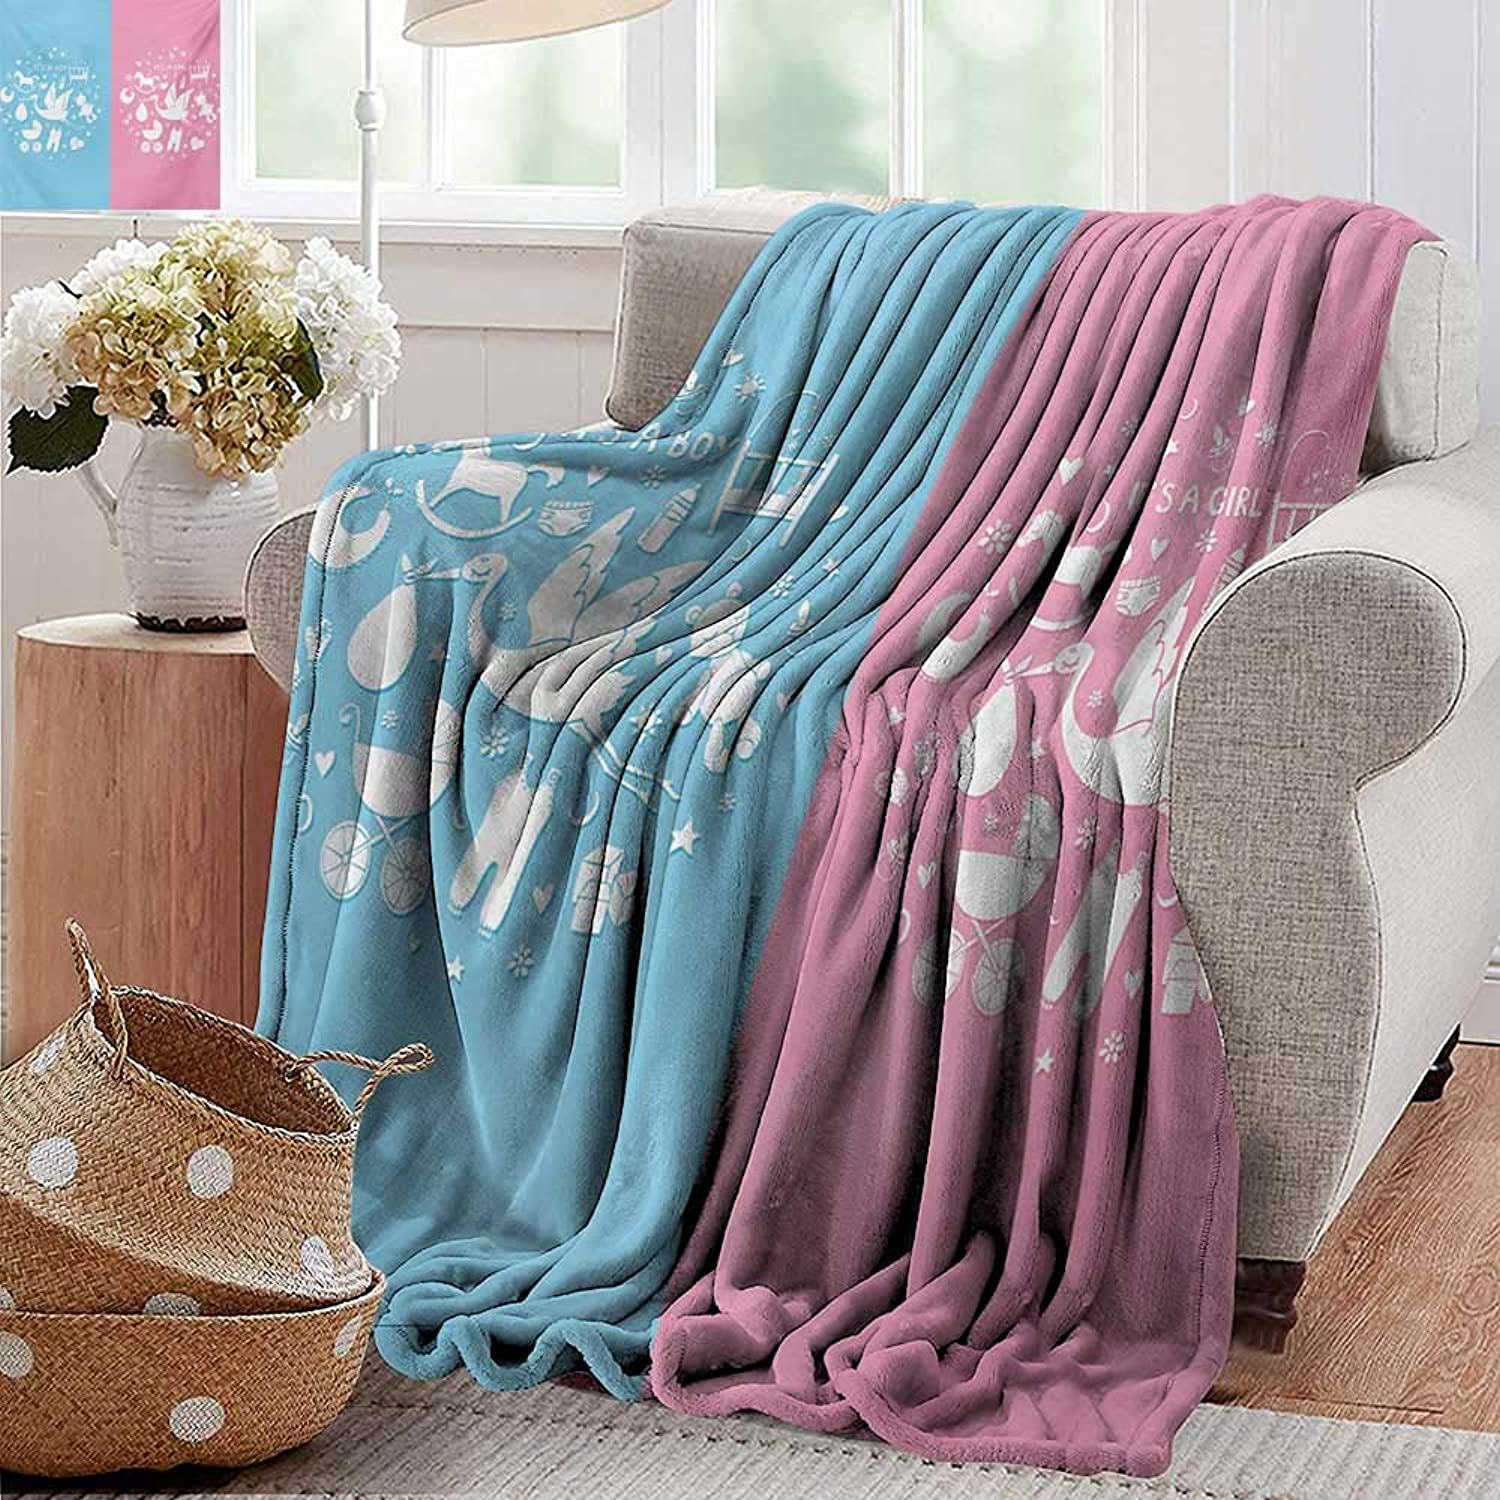 PearlRolan Velvet Touch Ultra Plush,Gender Reveal,Cute Icons Girls Boys Baby Shower Theme Stylized Toys Pattern,Sky bluee and Pale Pink,300GSM,Super Soft and Warm,Durable Throw Blanket 50 x60